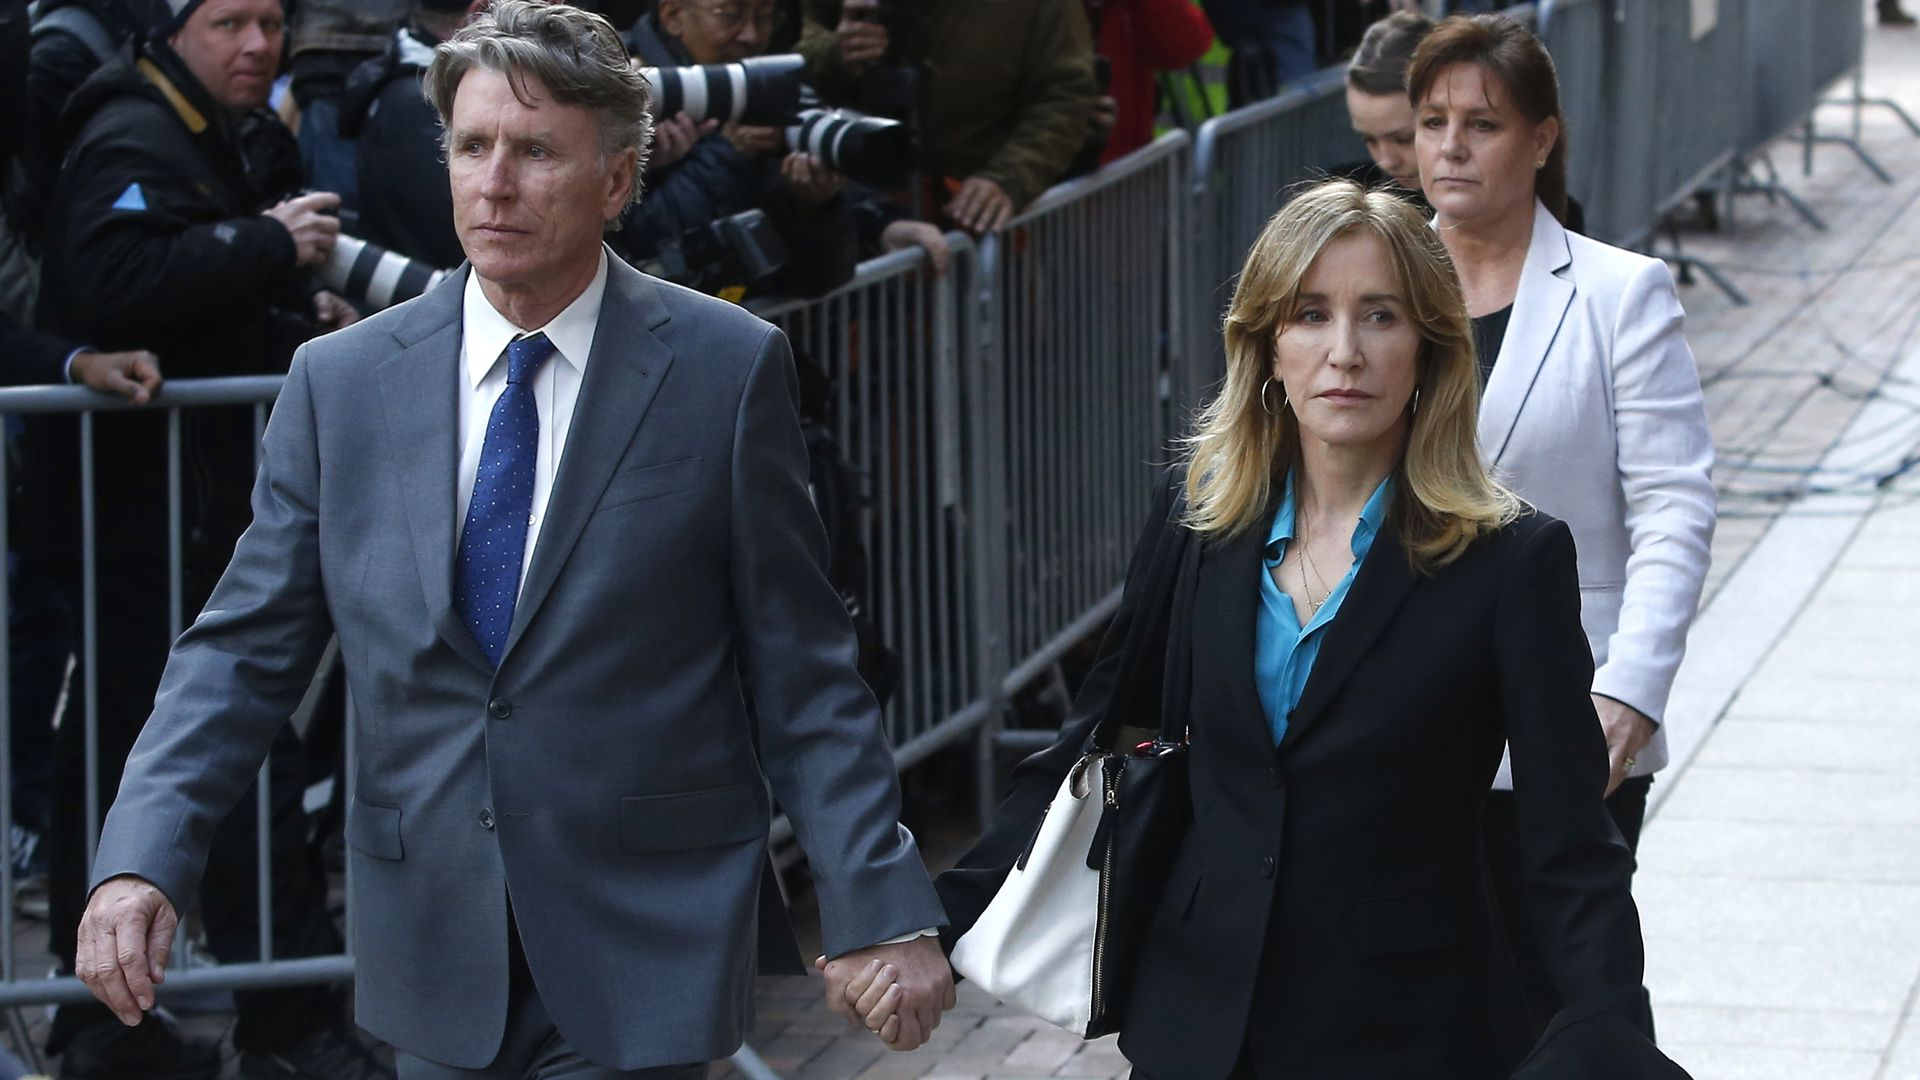 Actress Felicity Huffman with her husband outside Boston courthouse